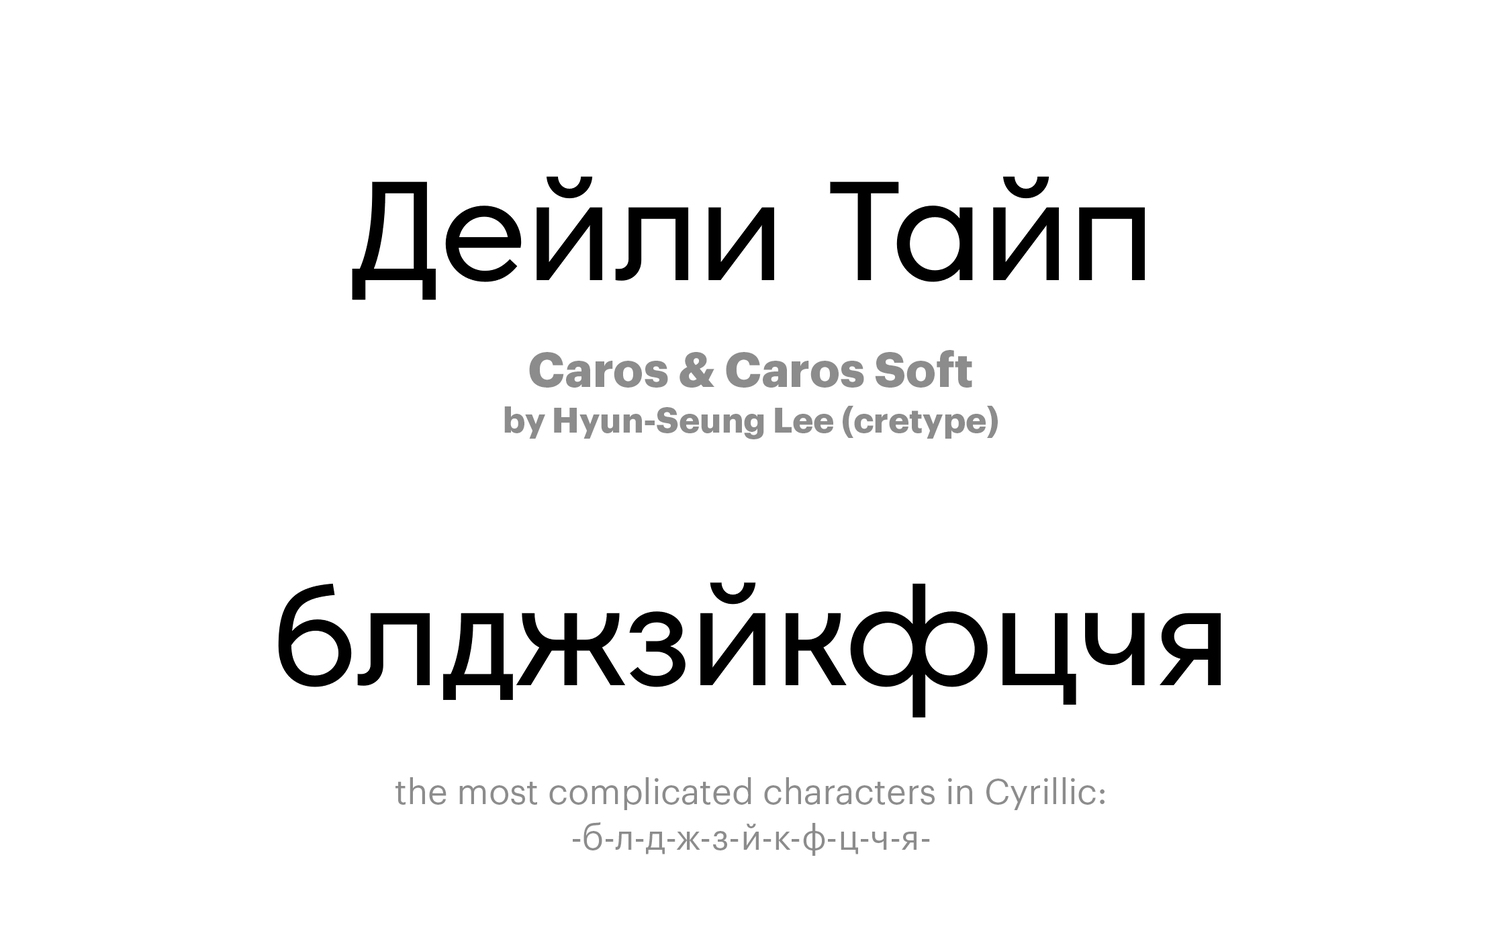 Caros-&-Caros-Soft-by-Hyun-Seung-Lee-(cretype)